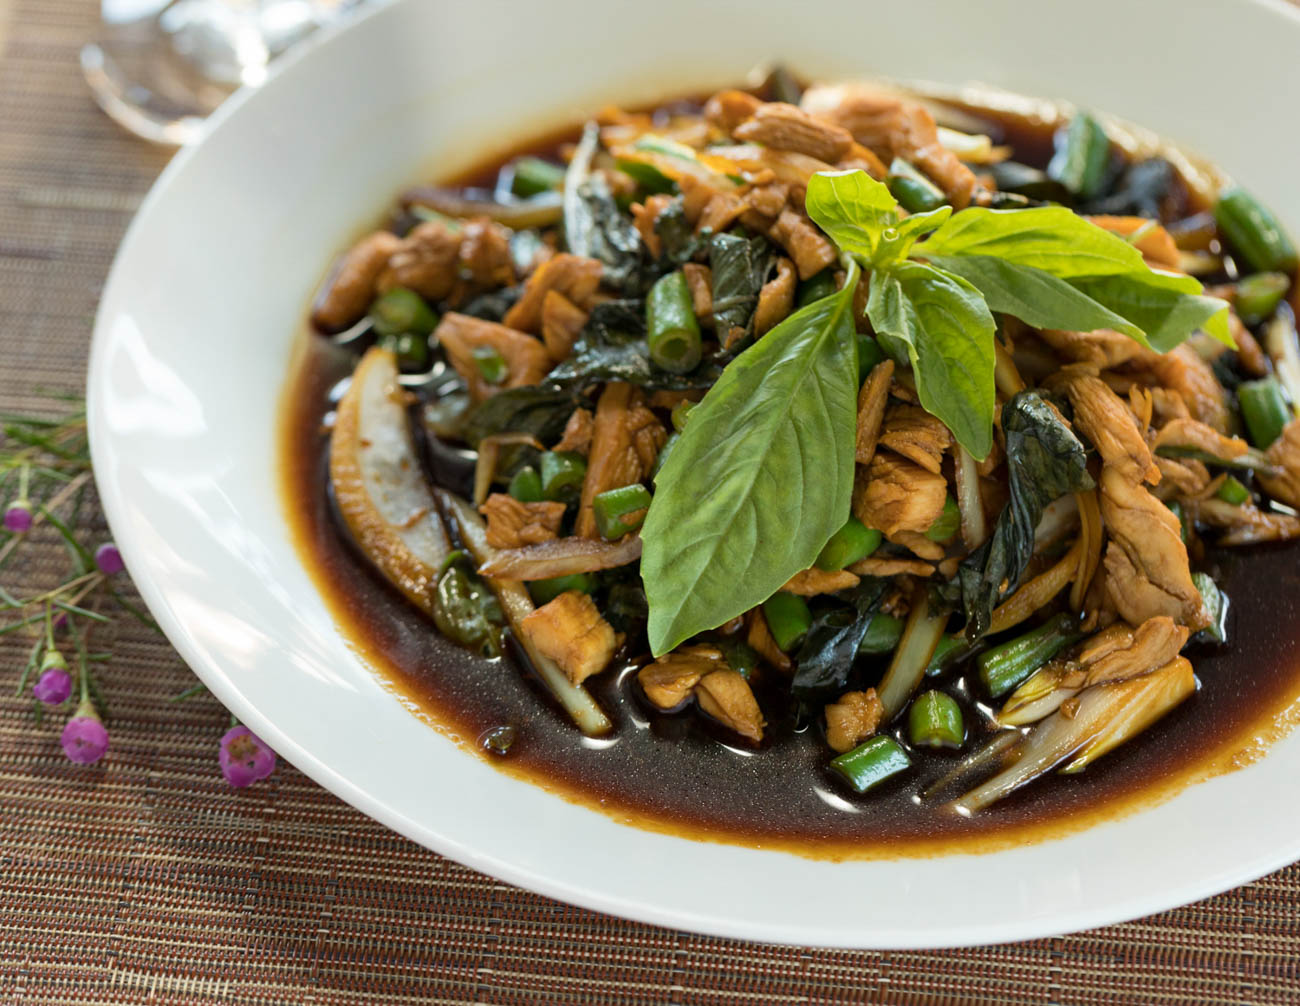 Chicken basil country style stir-fry: beef or chicken with green bean, white onion, and fresh basil in Thai local basil sauce{ }/ Image: Marlene Rounds // Published: 1.17.19